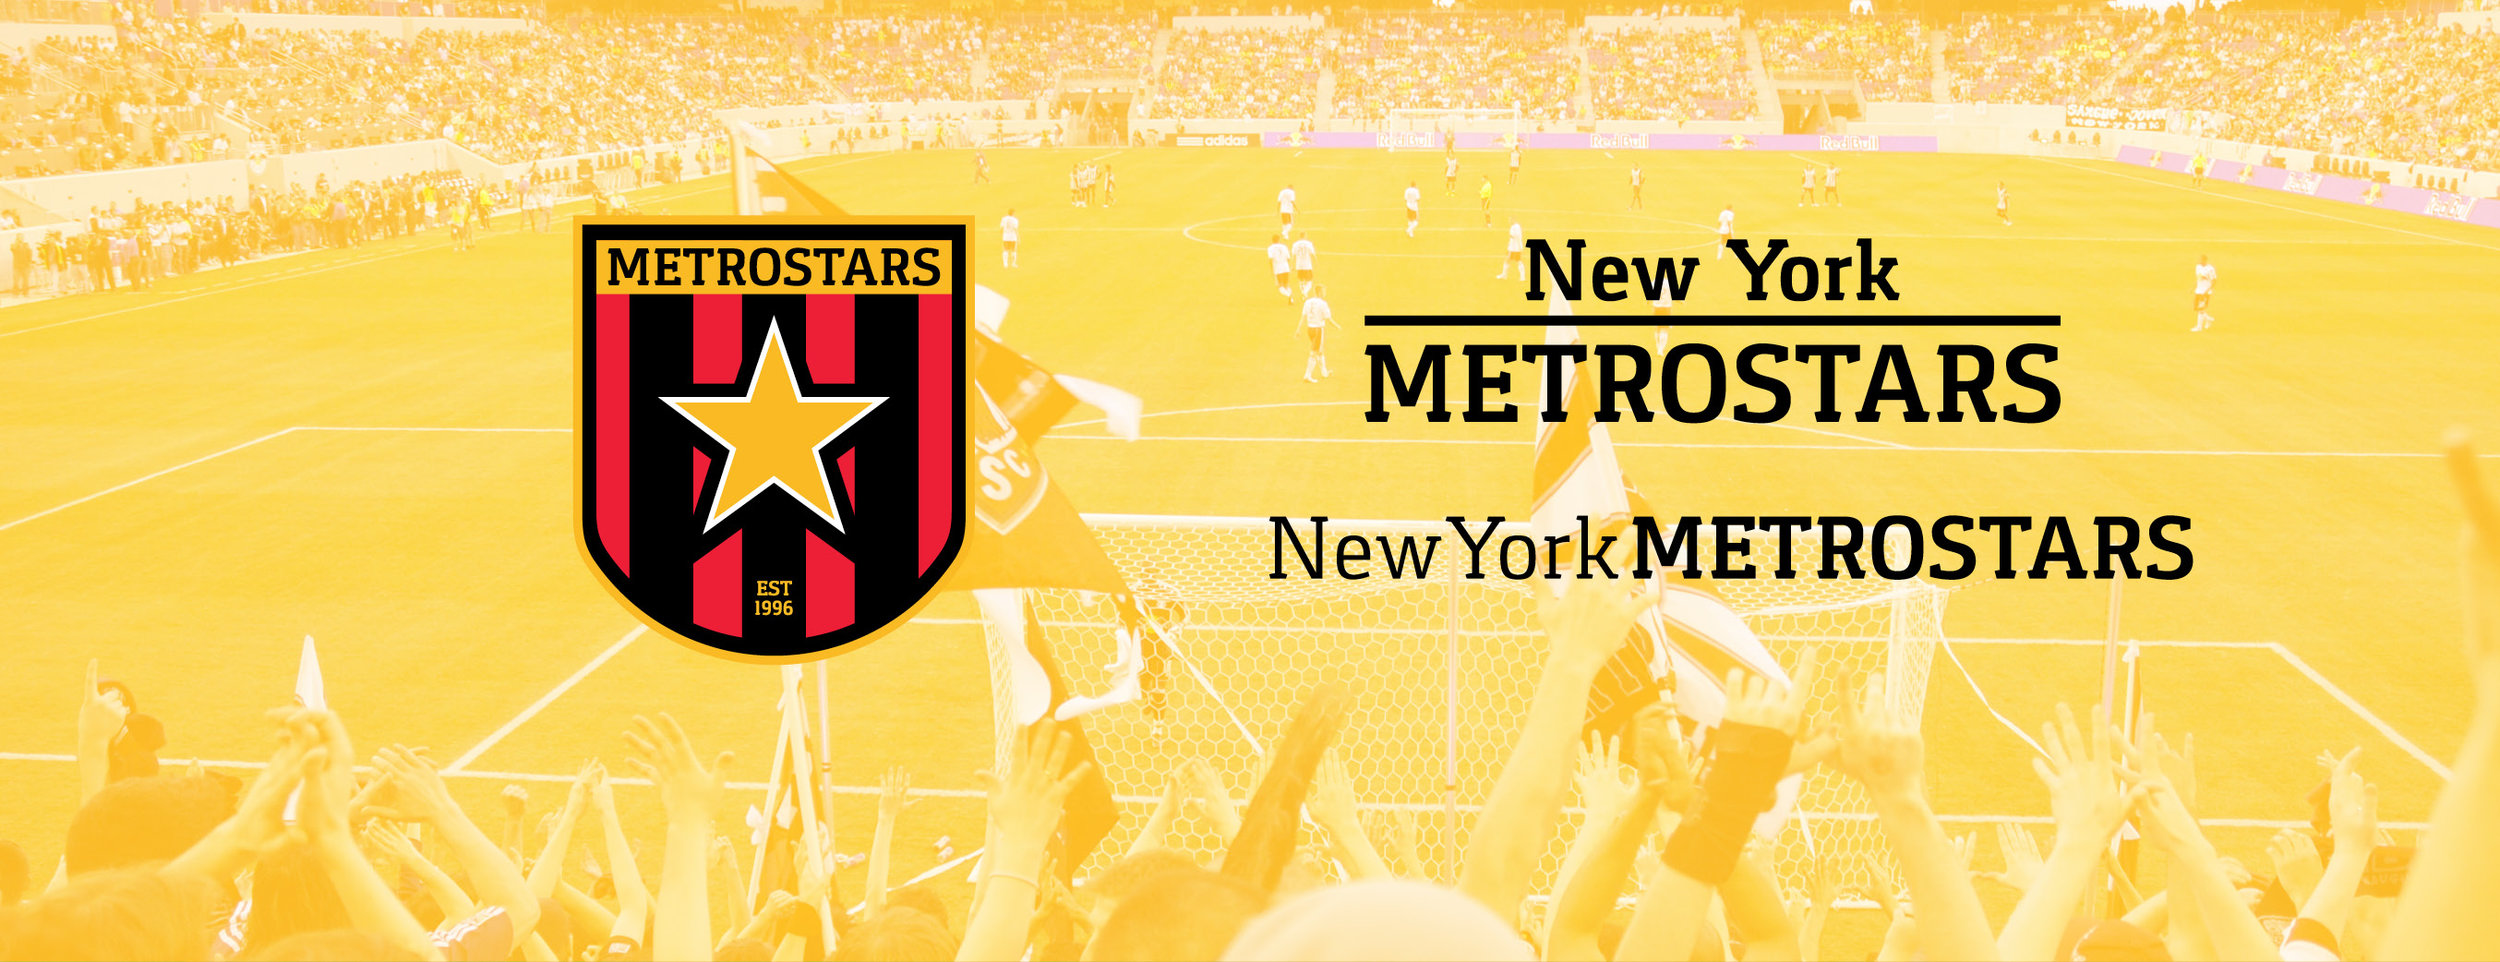 Rather than compete with NYCFC with having New York in its name, I eliminated it from the badge. It's not needed.